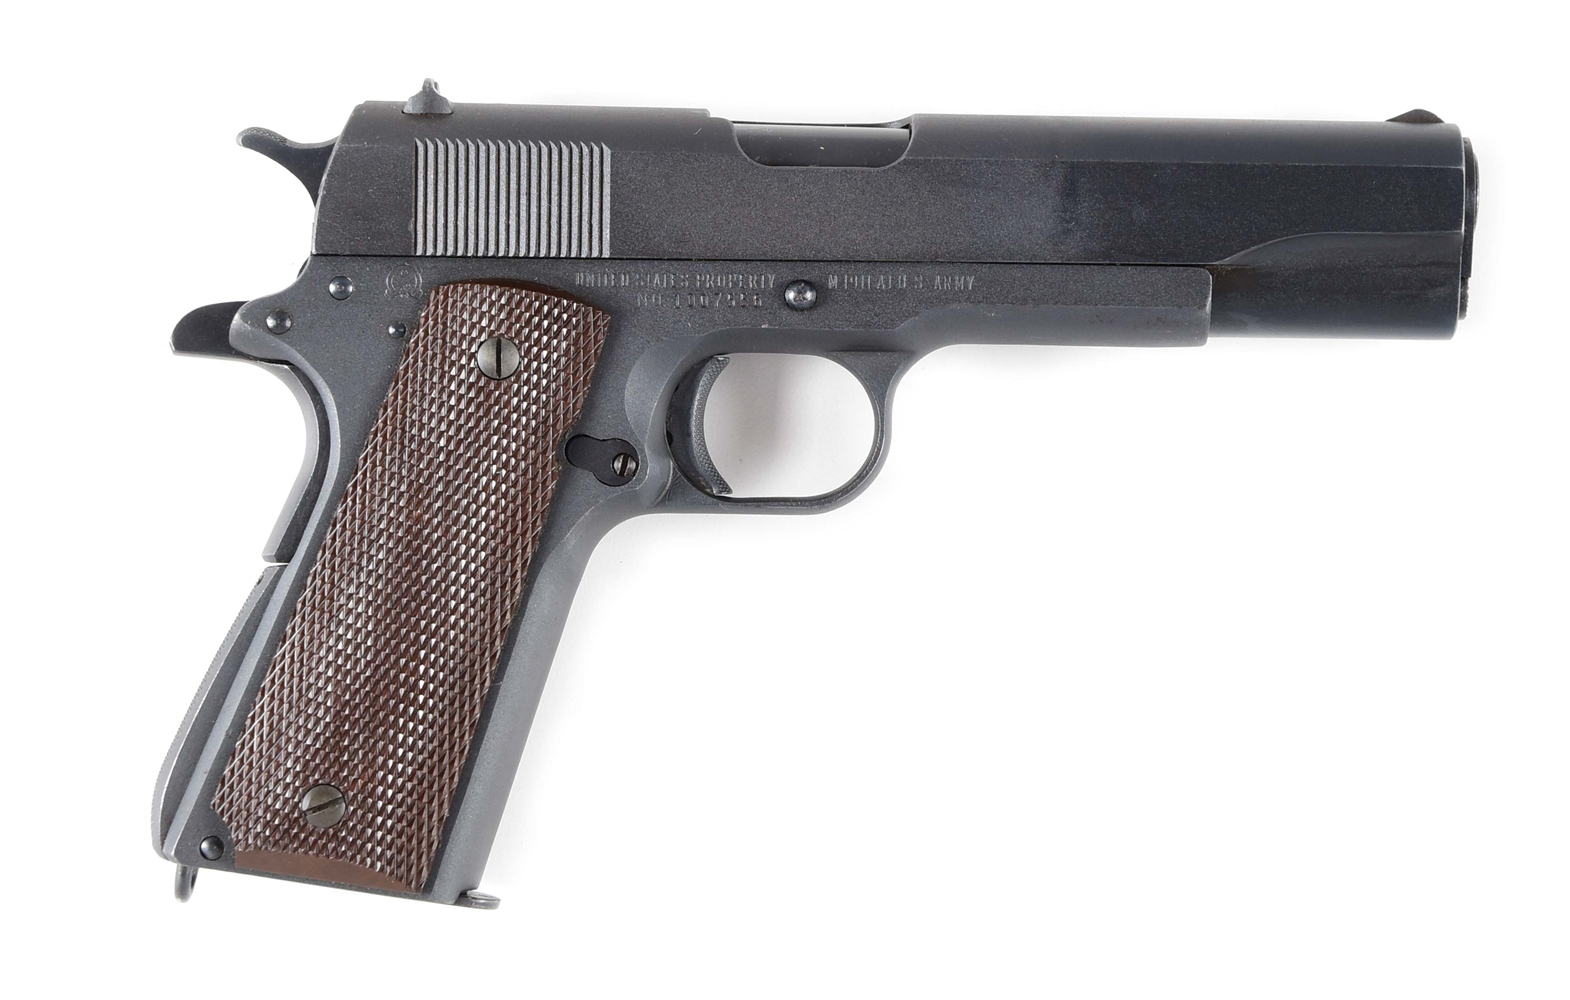 (C) US 1911A1 .45 AUTOMATIC BY REMINGTON RAND, SERIAL 1007556.